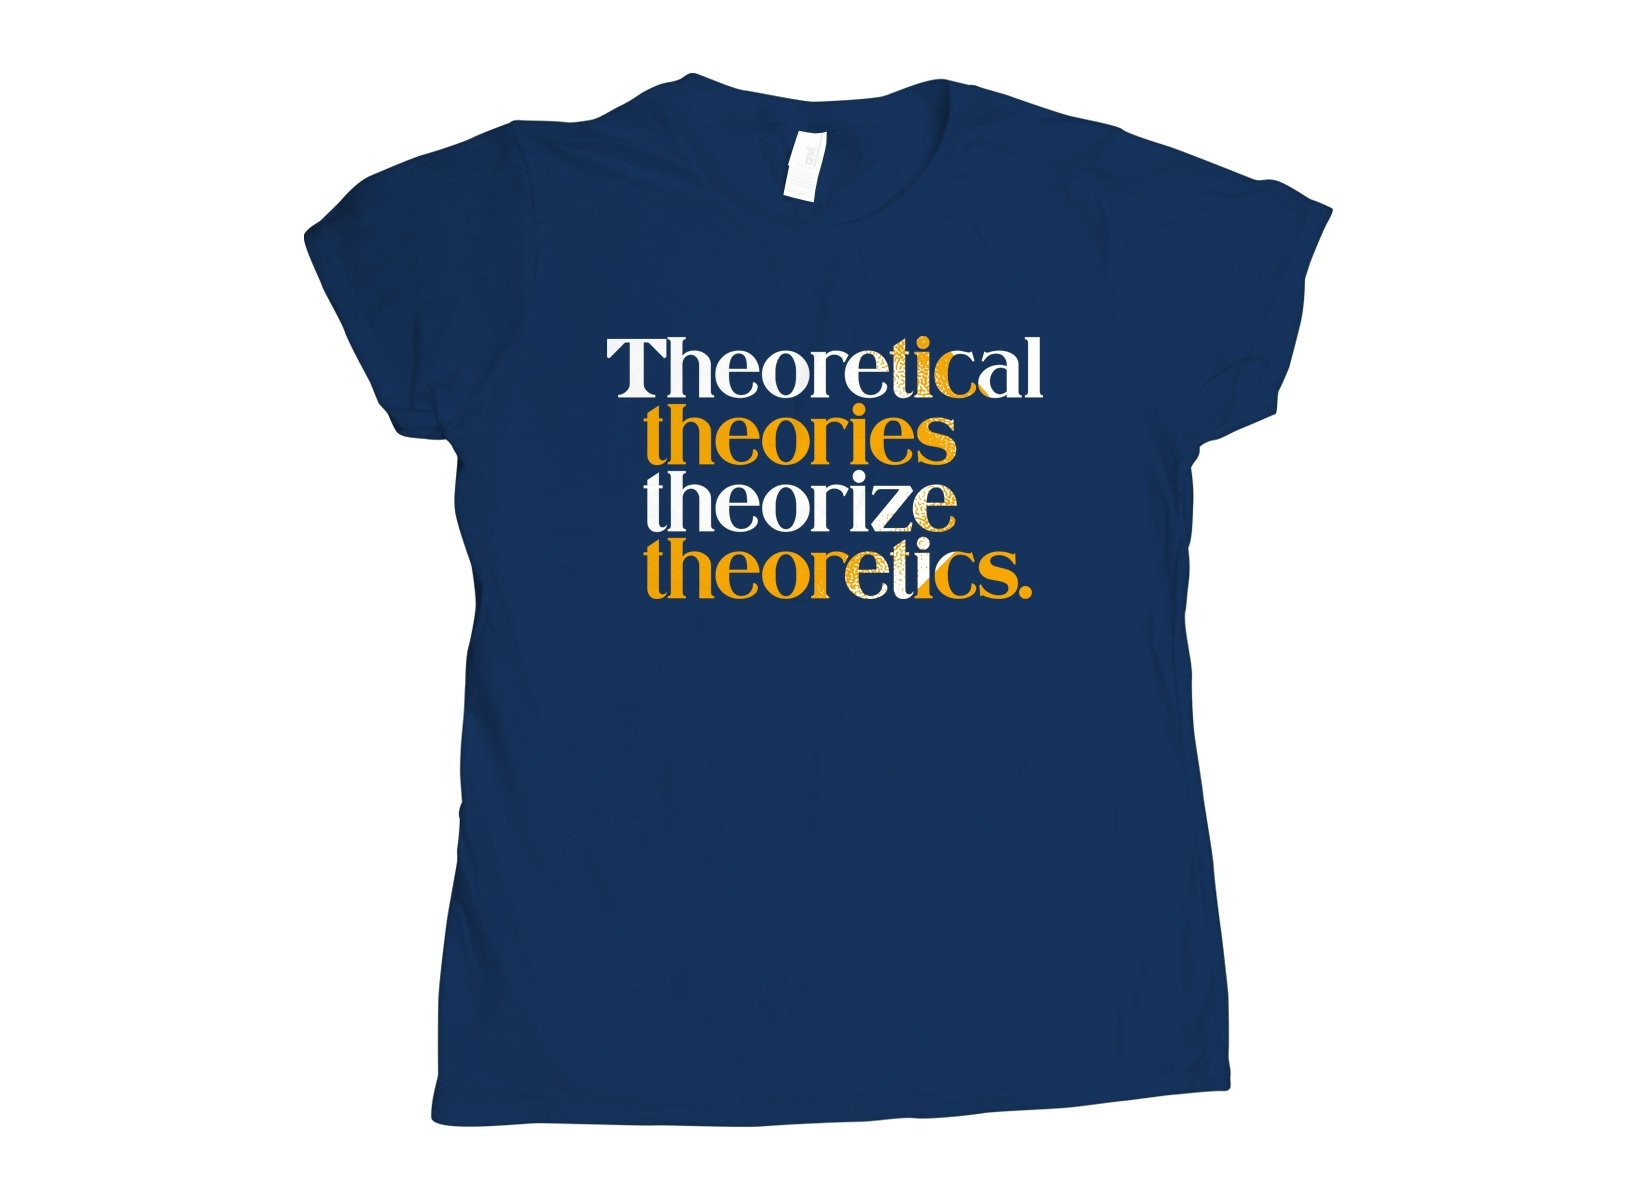 Theoretical Theories Theorize Theoretics on Womens T-Shirt